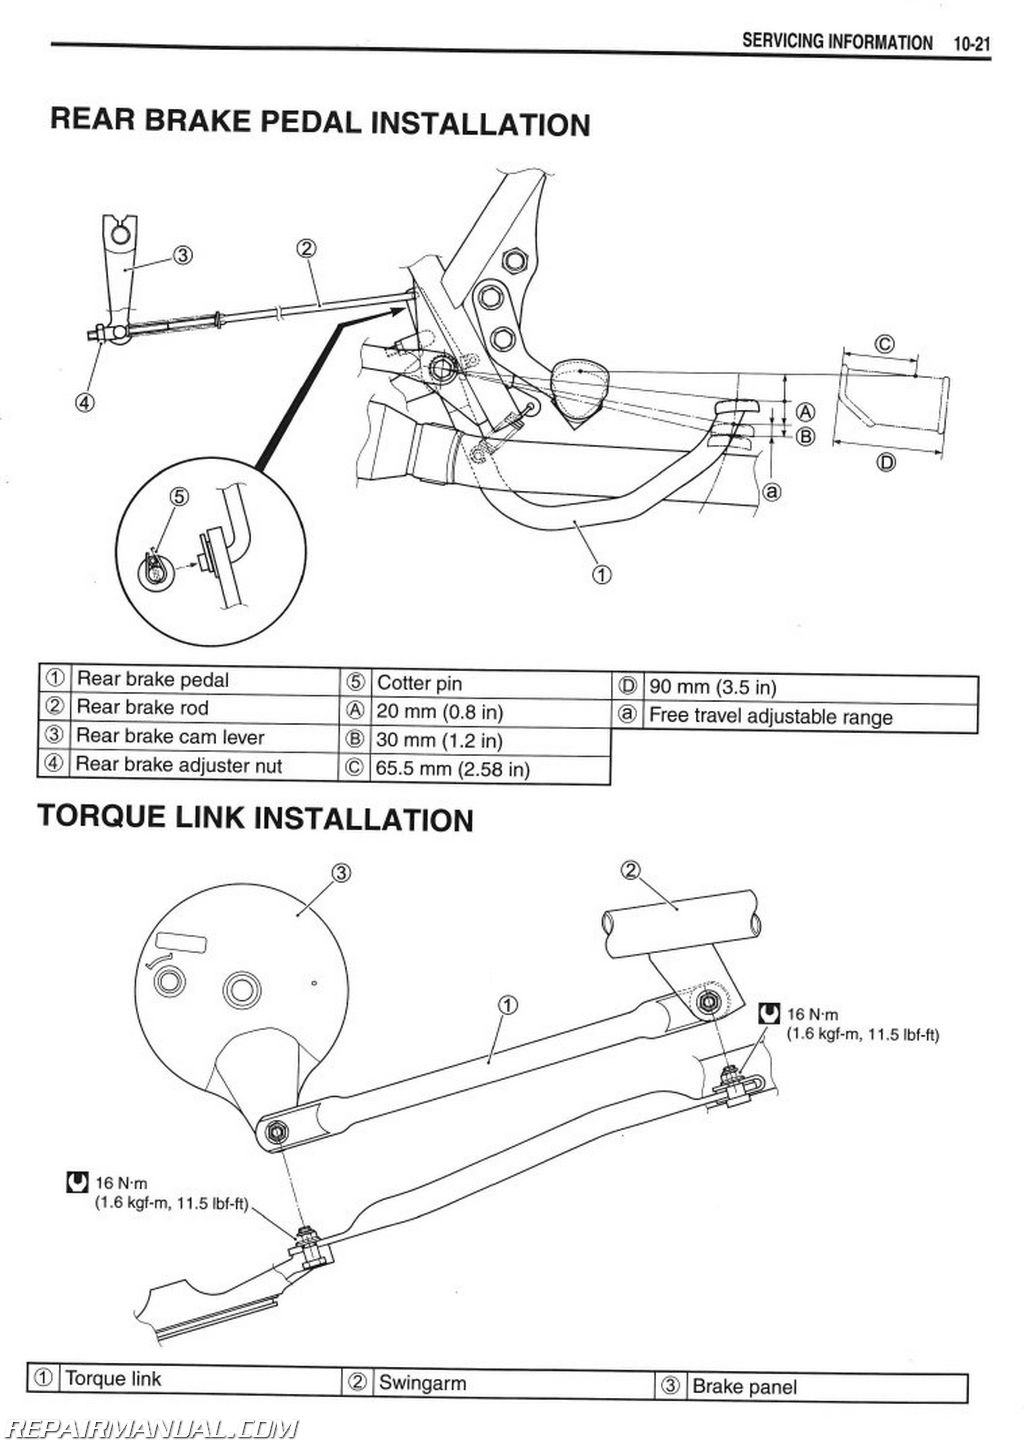 Suzuki Tu250x Motorcycle Service Manual